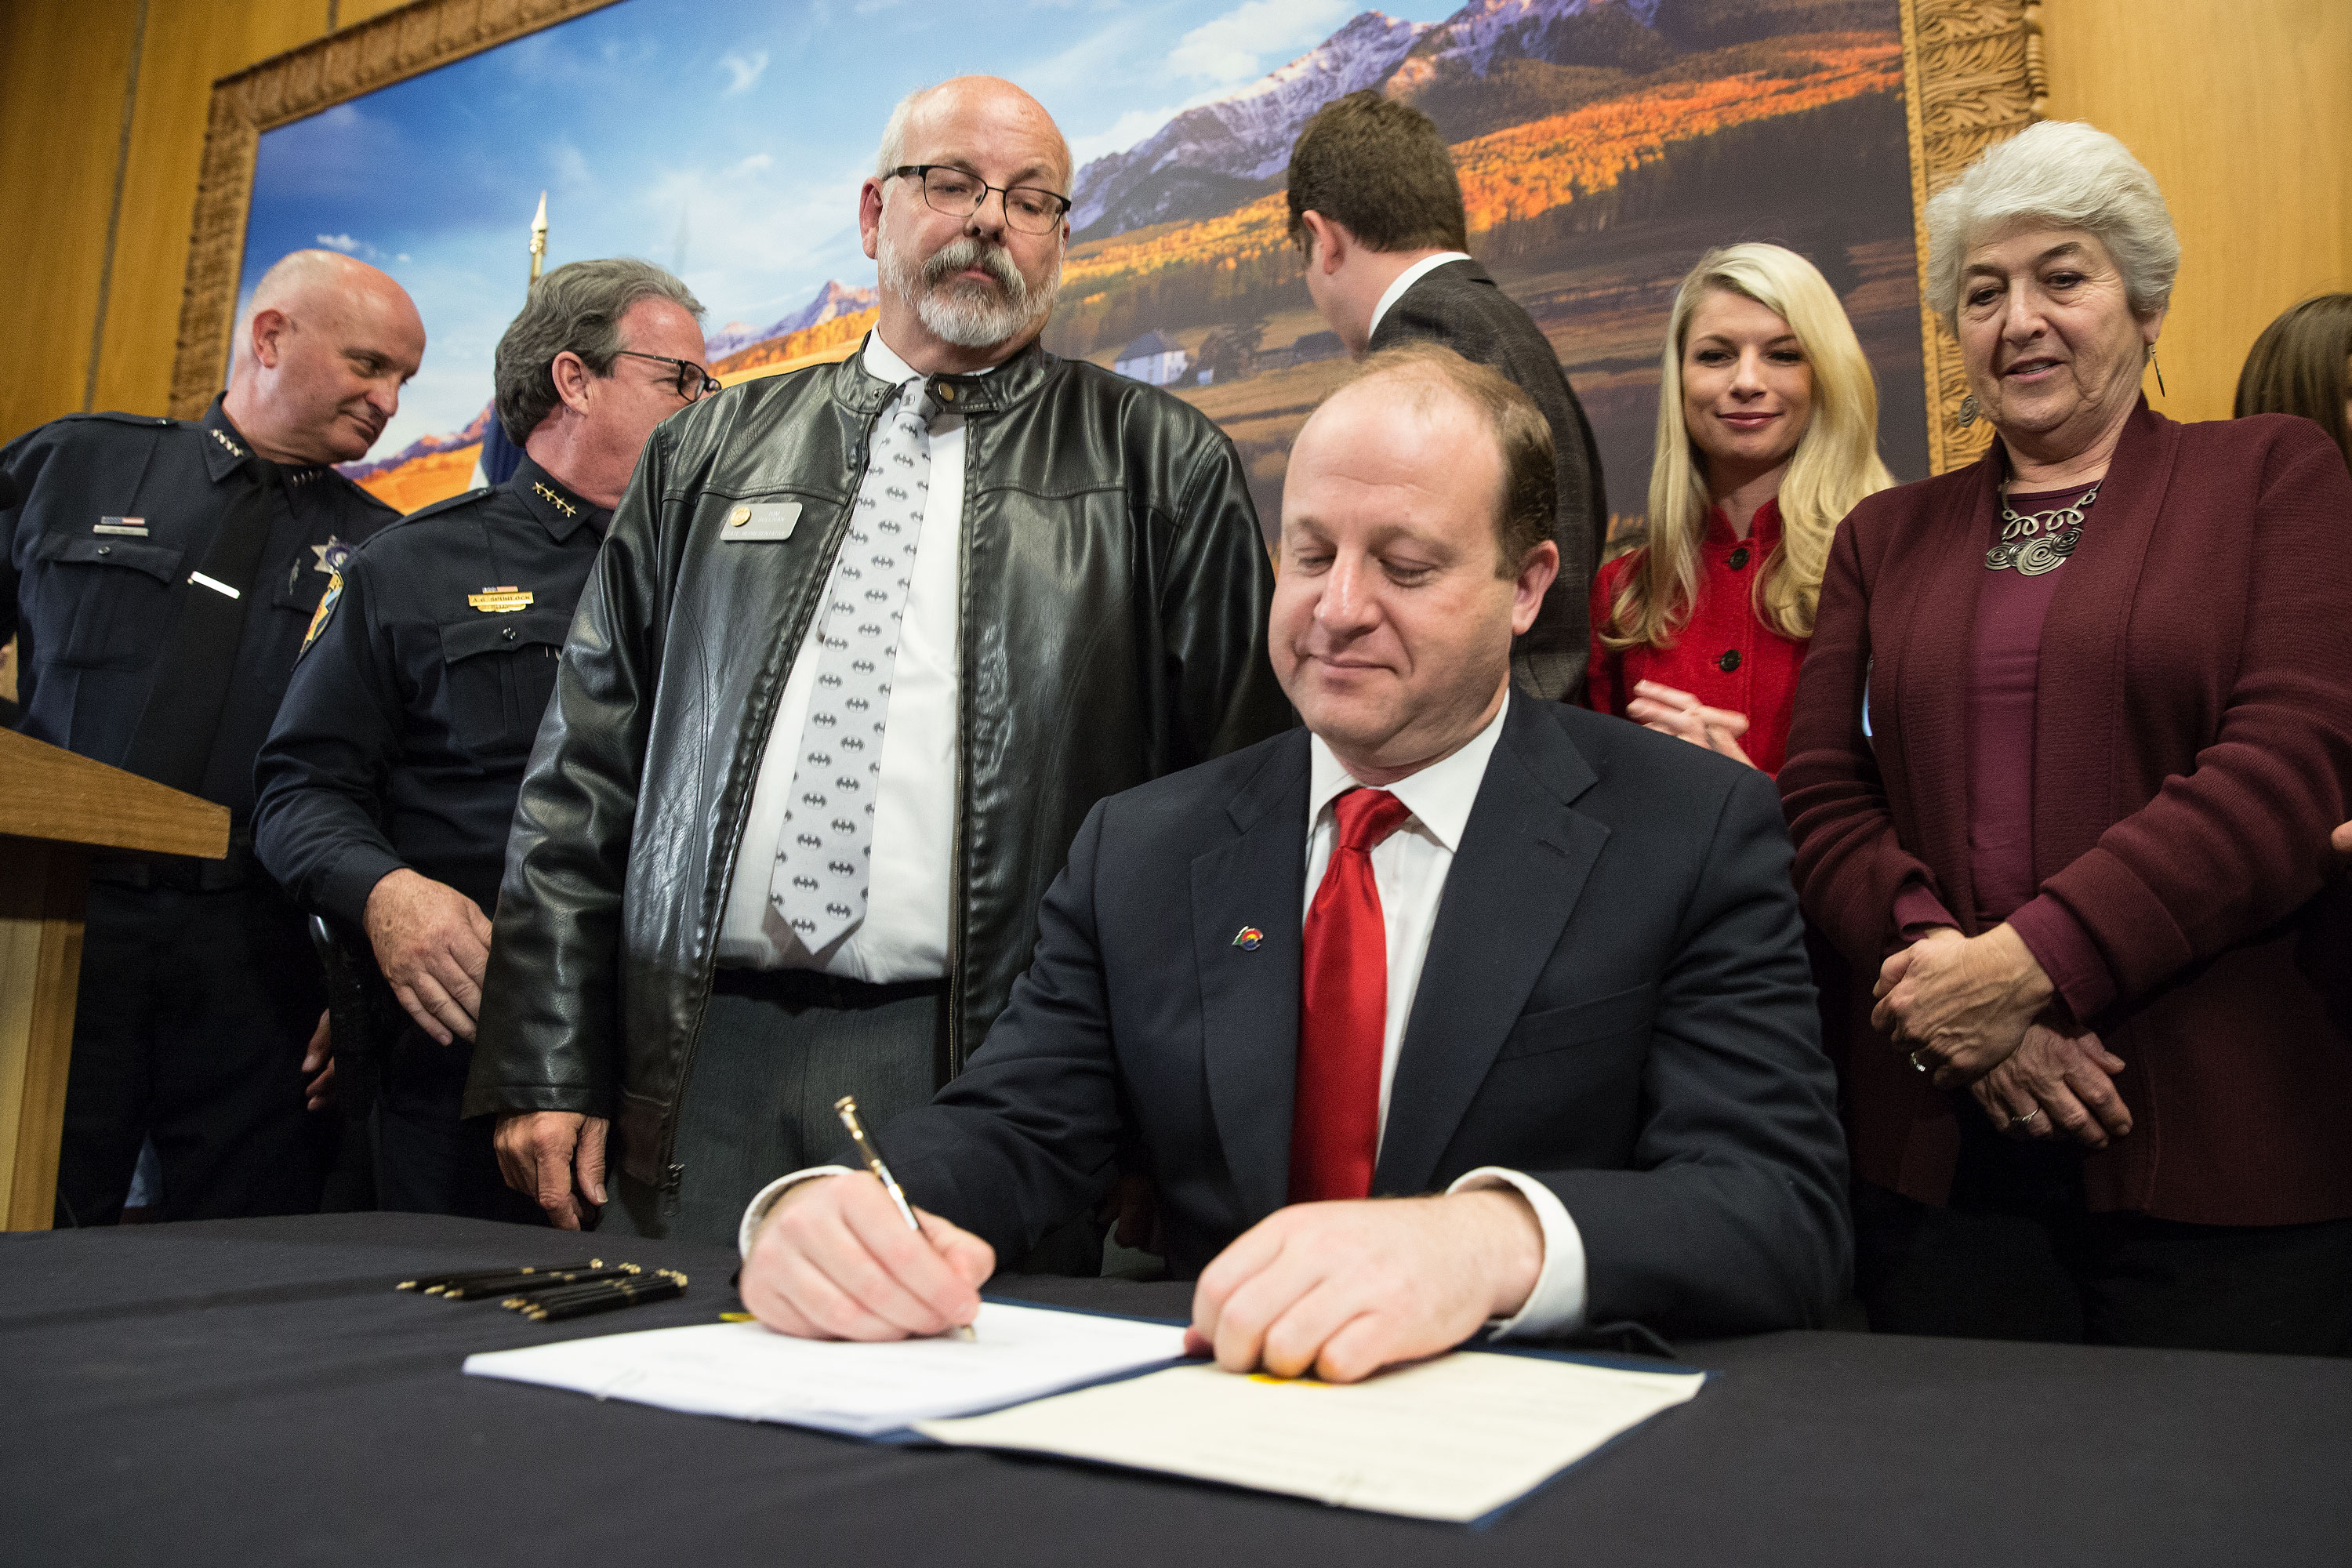 State Rep. Tom Sullivan watches as Gov. Jared Polis signs HB 1177, the Red Flag bill, into law on April 12, 2019. Sullivan, a freshman lawmaker, campaigned for office in part to enact tougher gun control laws after his son Alex was murdered in the Aurora theater shooting. He was a leading sponsor of the bill.